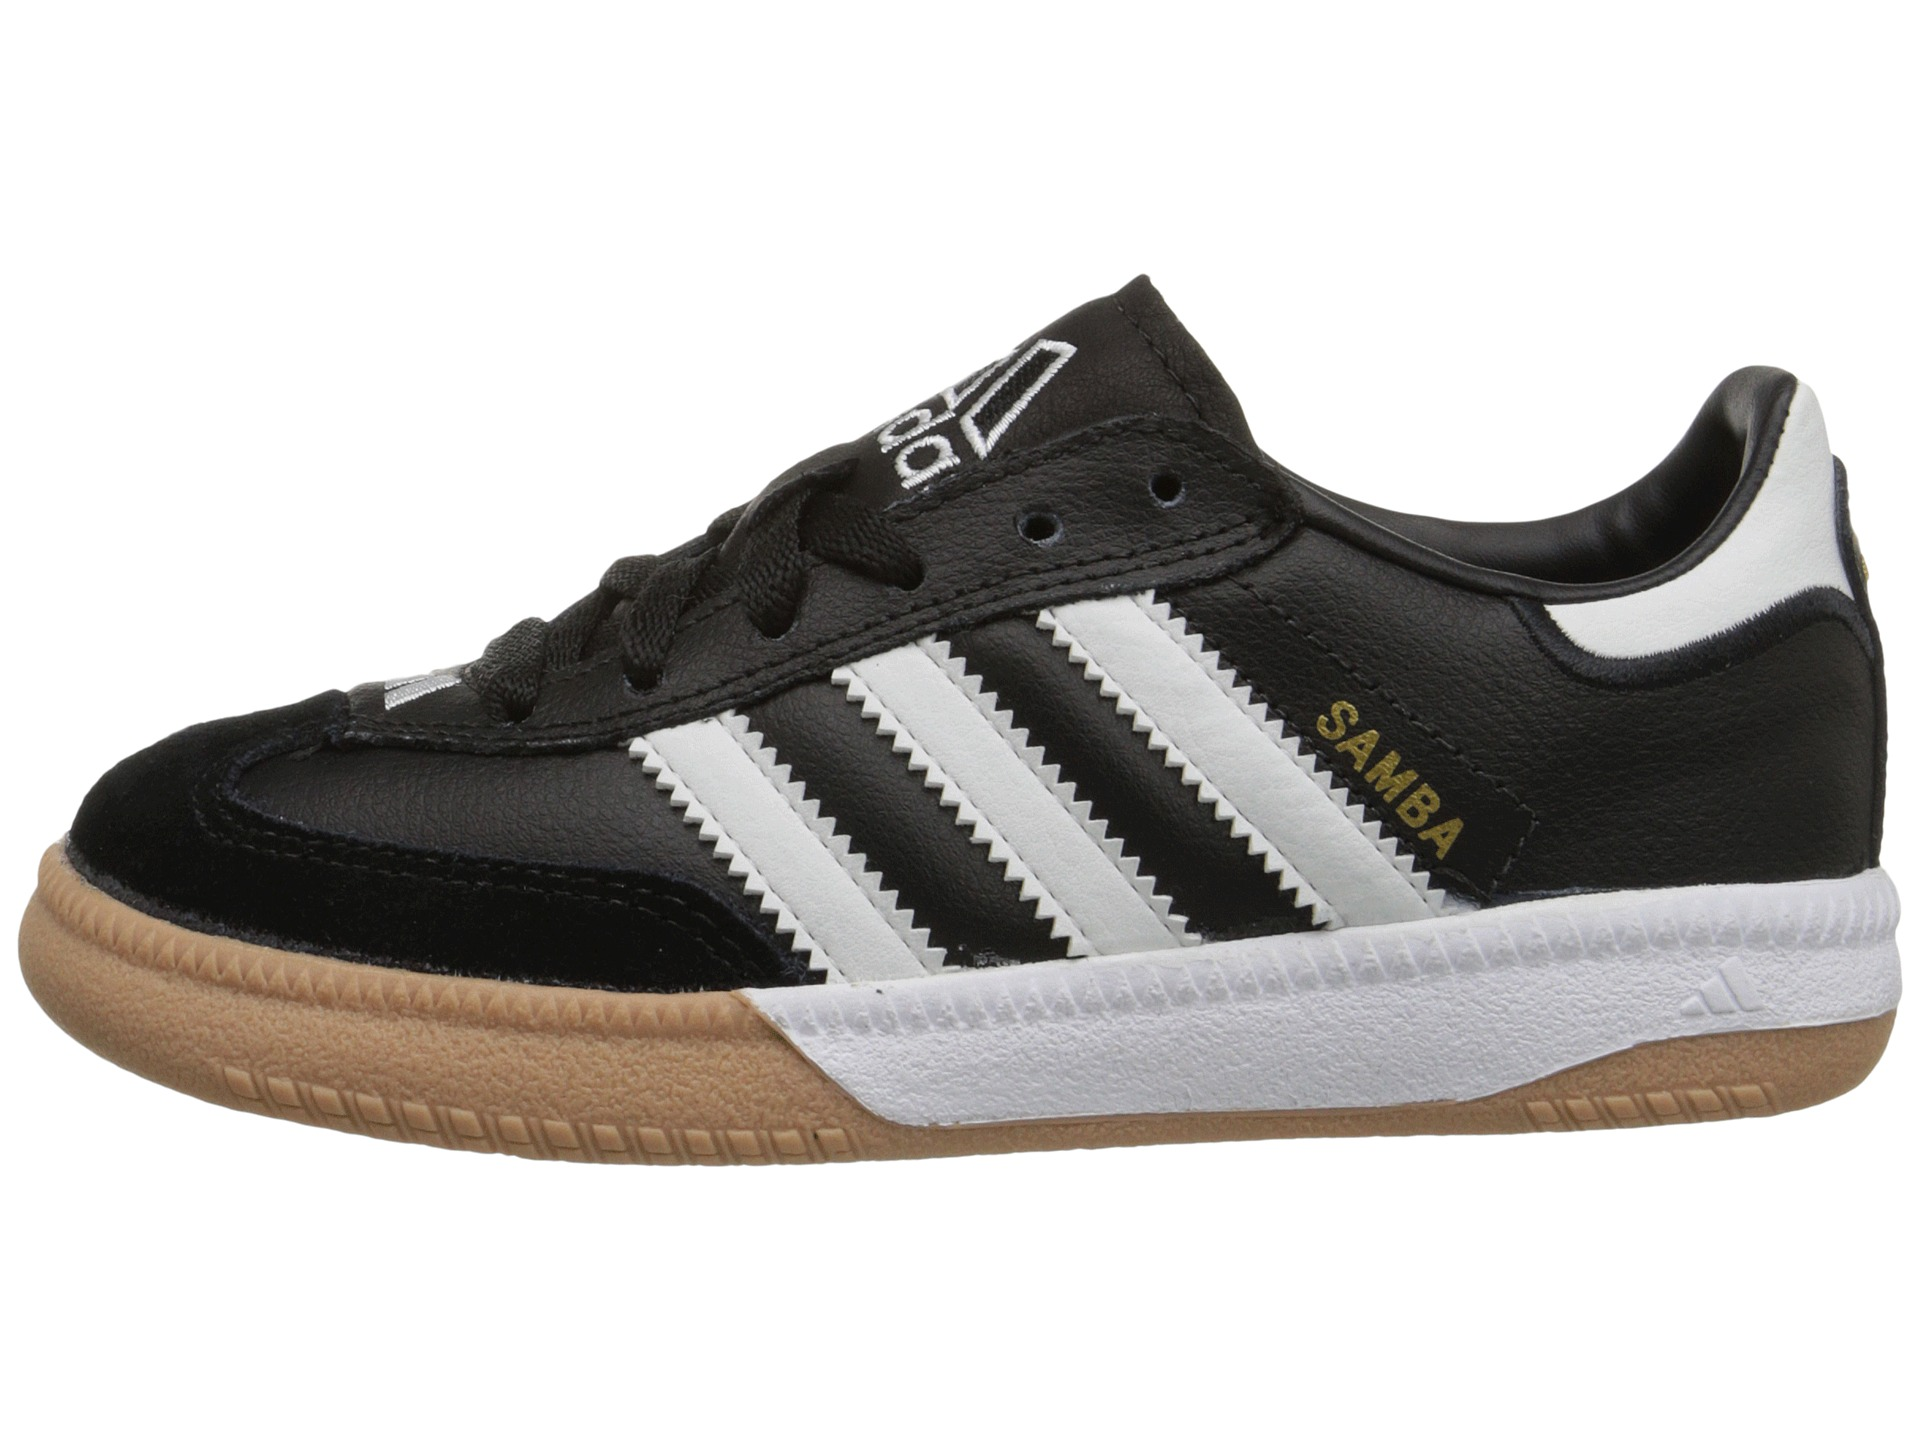 Adidas kids samba millennium core toddler youth артикул 1